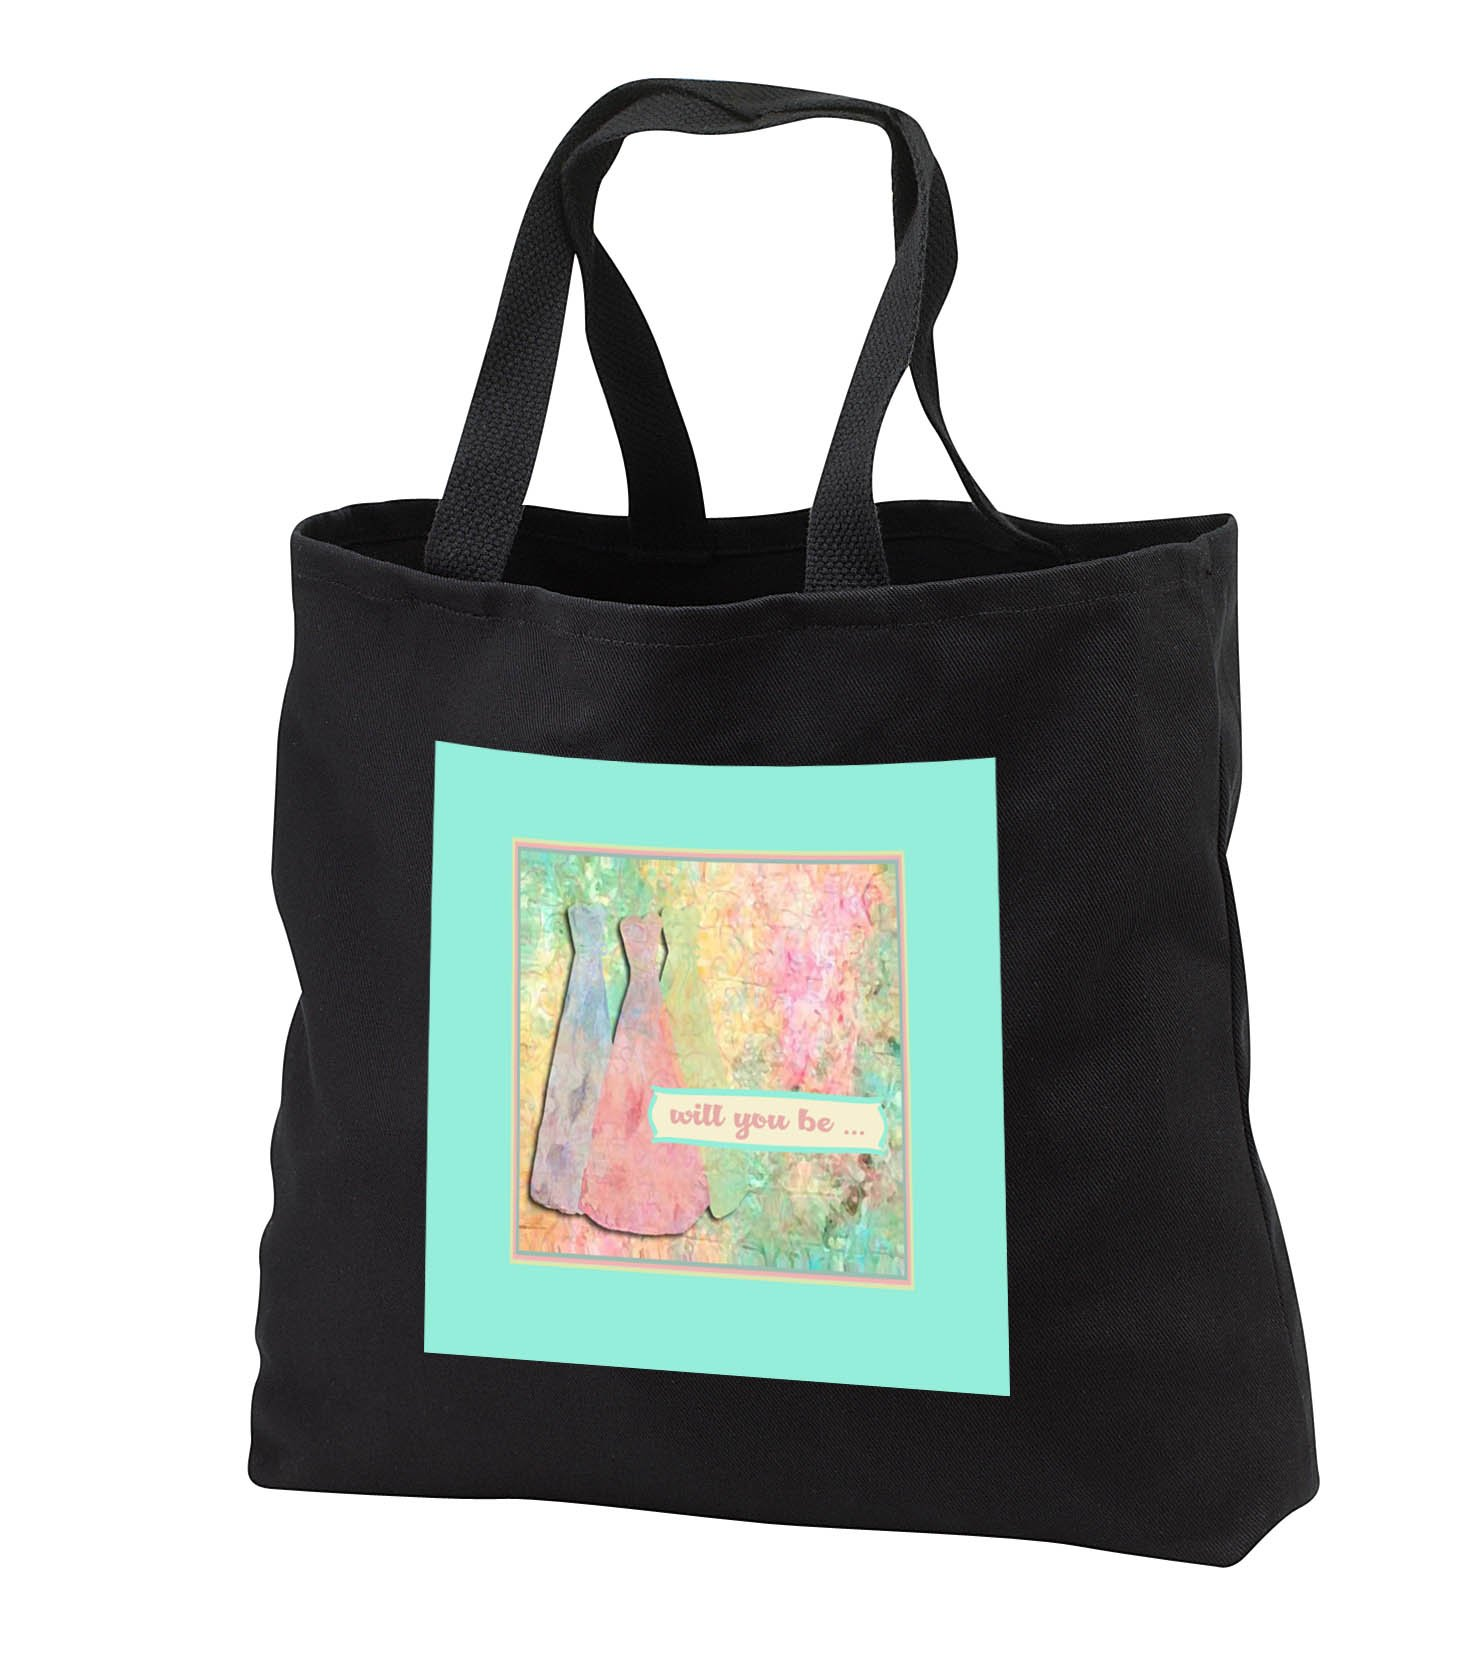 Beverly Turner Wedding Bridal Party Design - Will you be, Blue, Pink, and Yellow Green, Dresses, Abstract - Tote Bags - Black Tote Bag 14w x 14h x 3d (tb_282220_1)